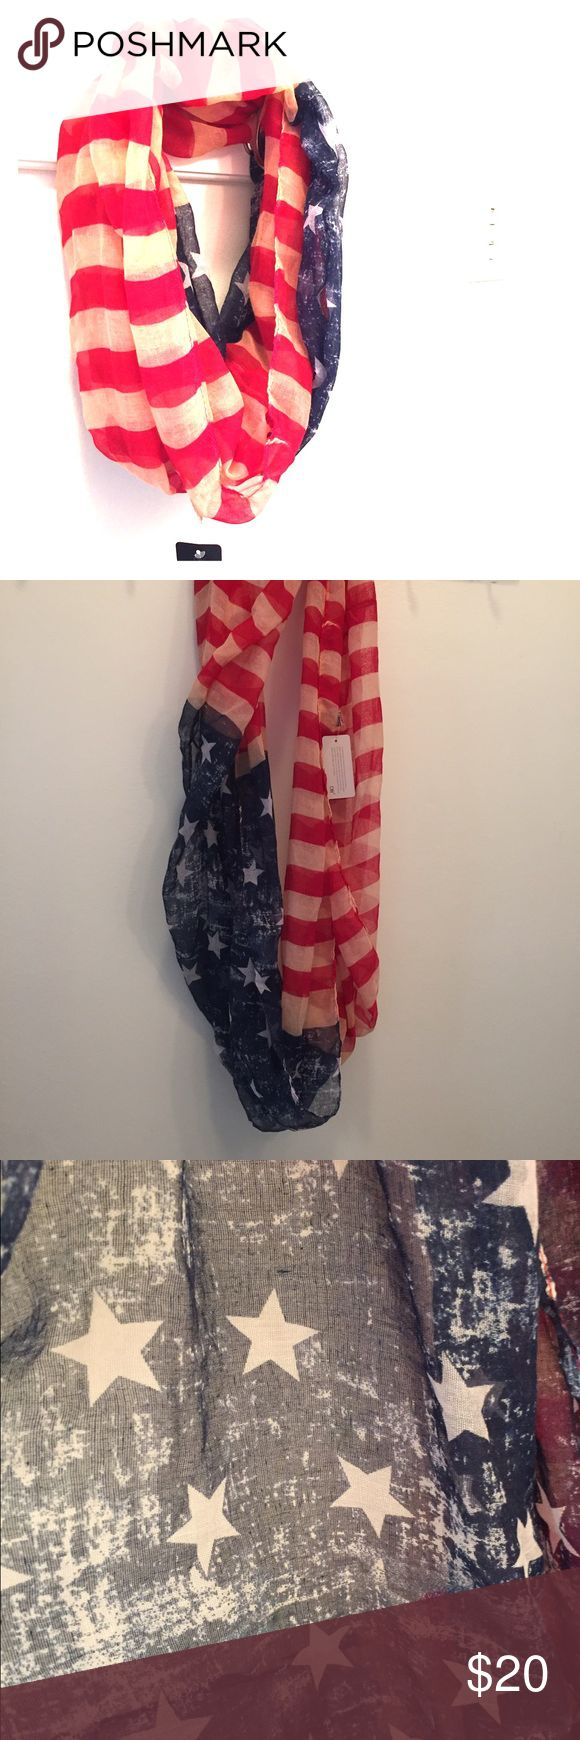 🇺🇸 NWT Flag Print Infinity Scarf American Flag Print Infinity Scarf. Tags still attached. One size fits all. Accessories